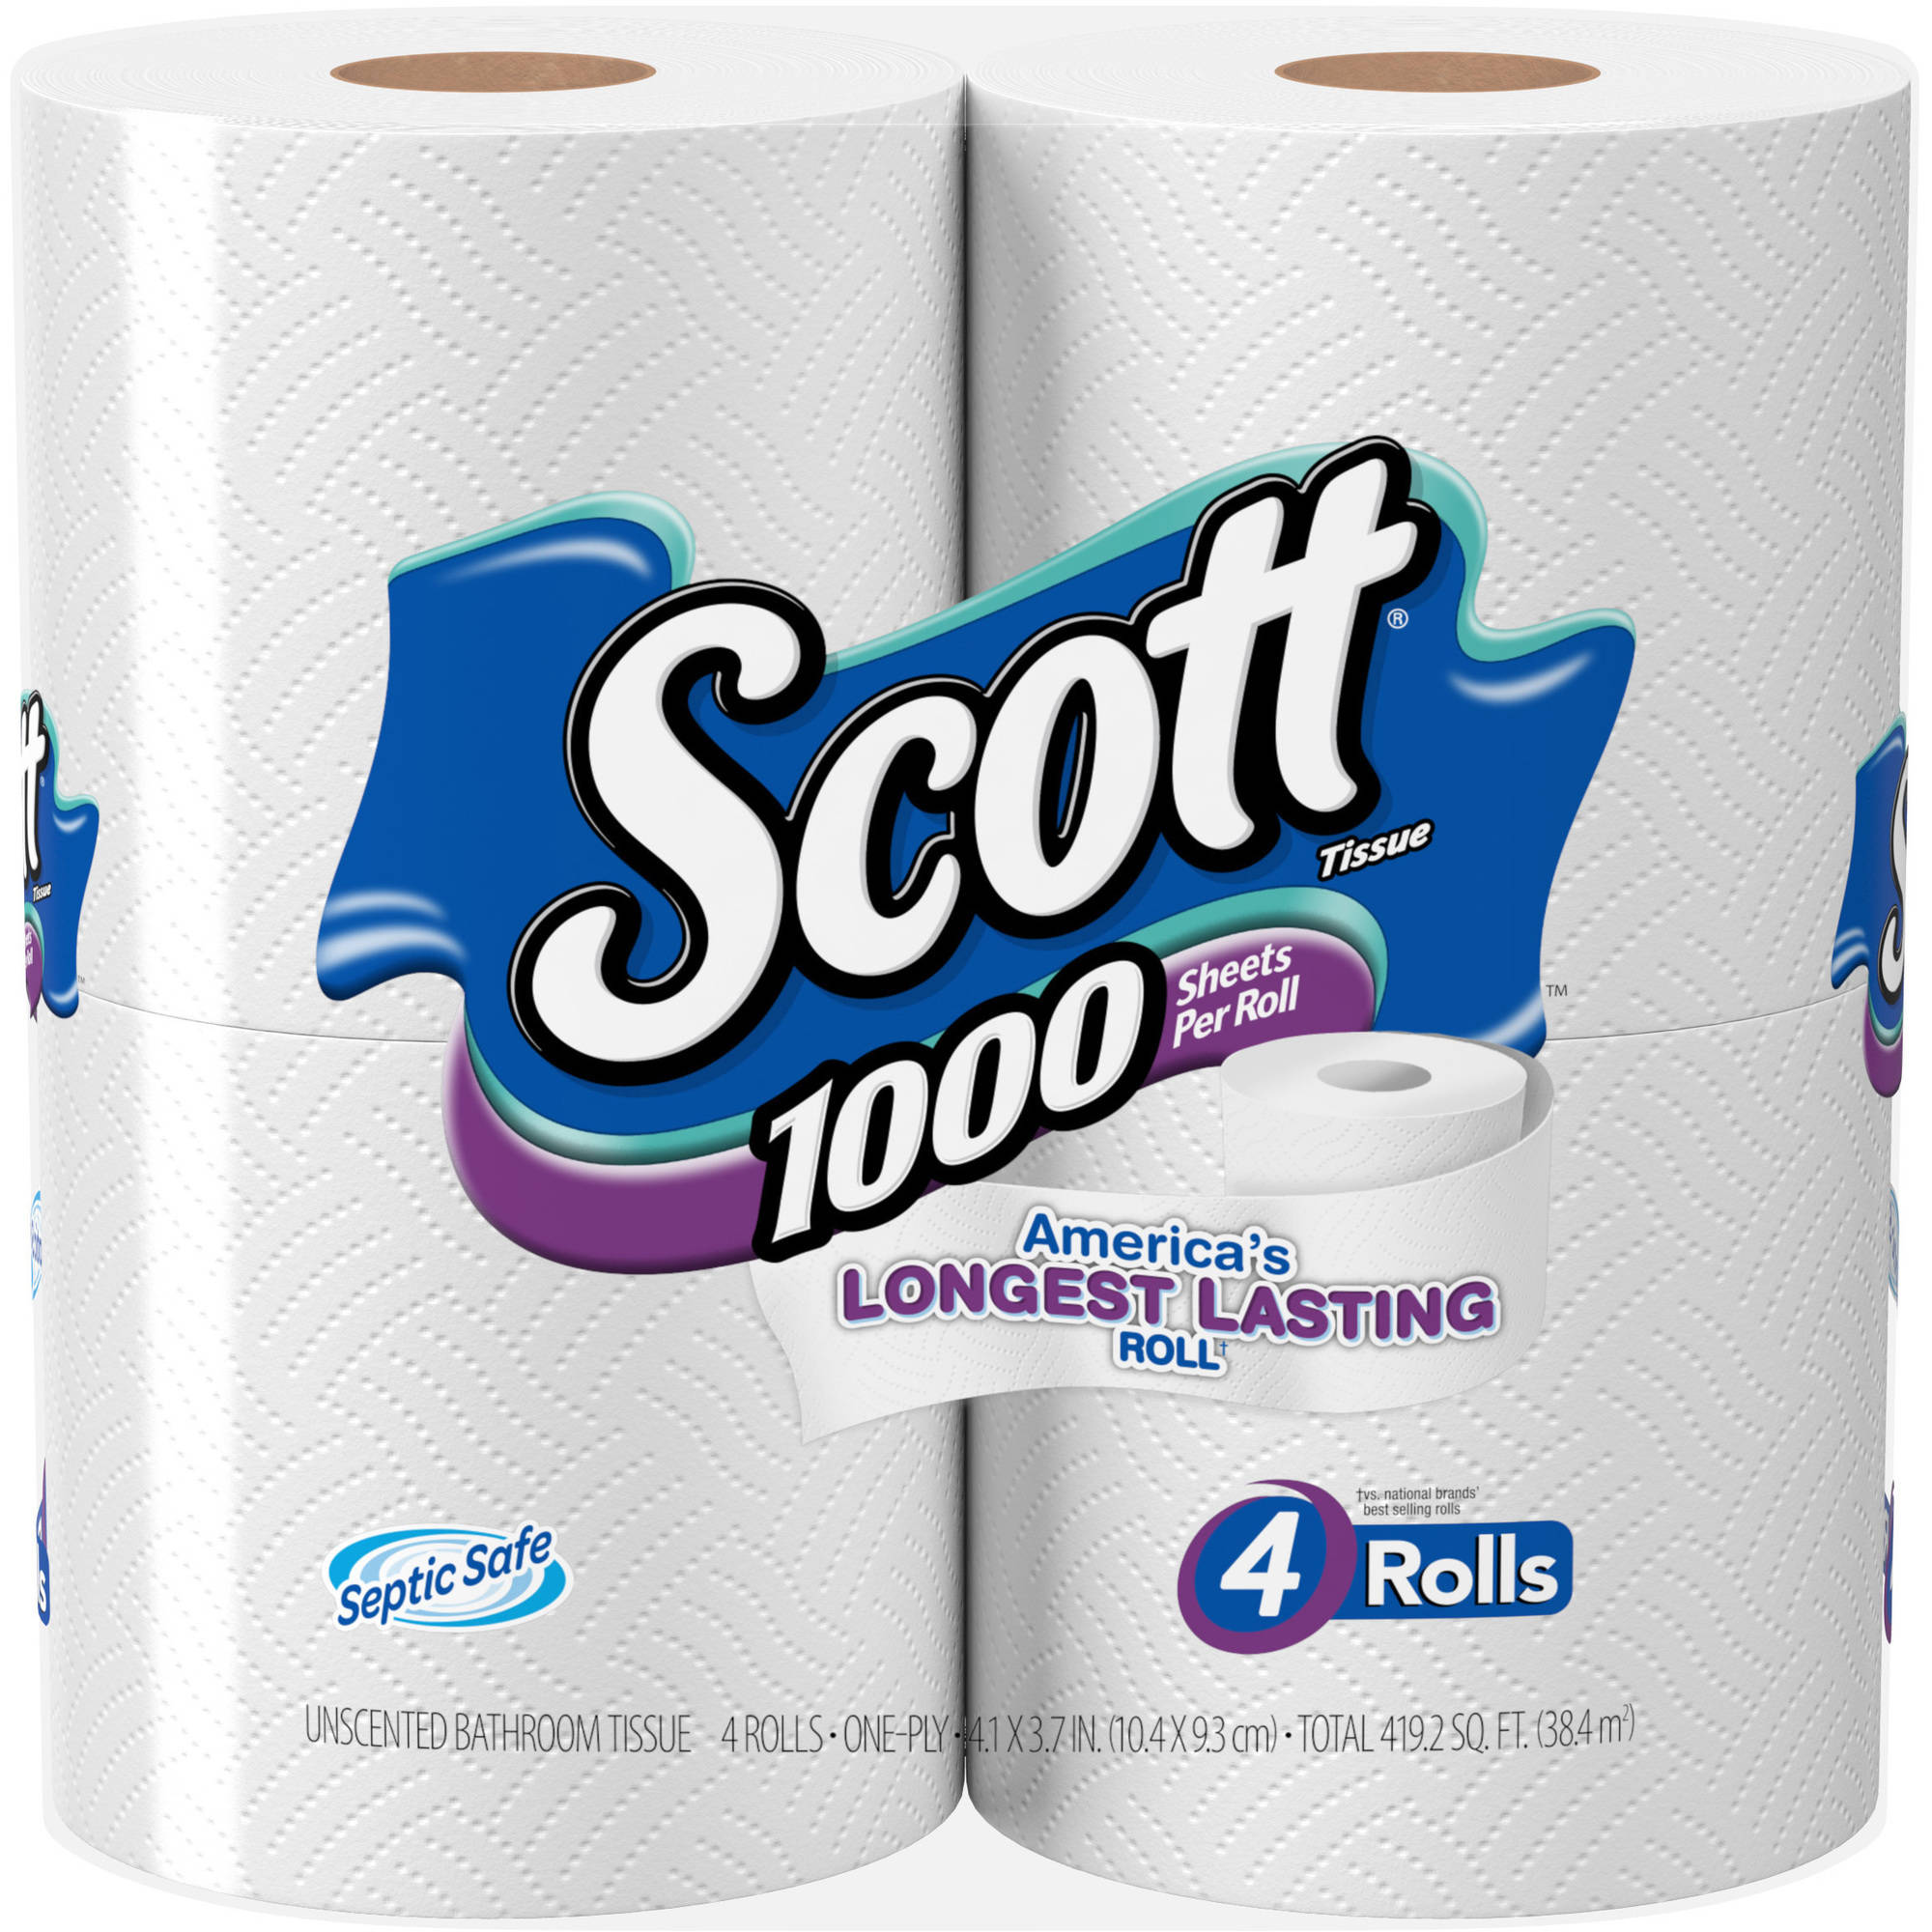 Scott Tissue One Ply Sheet Rolls